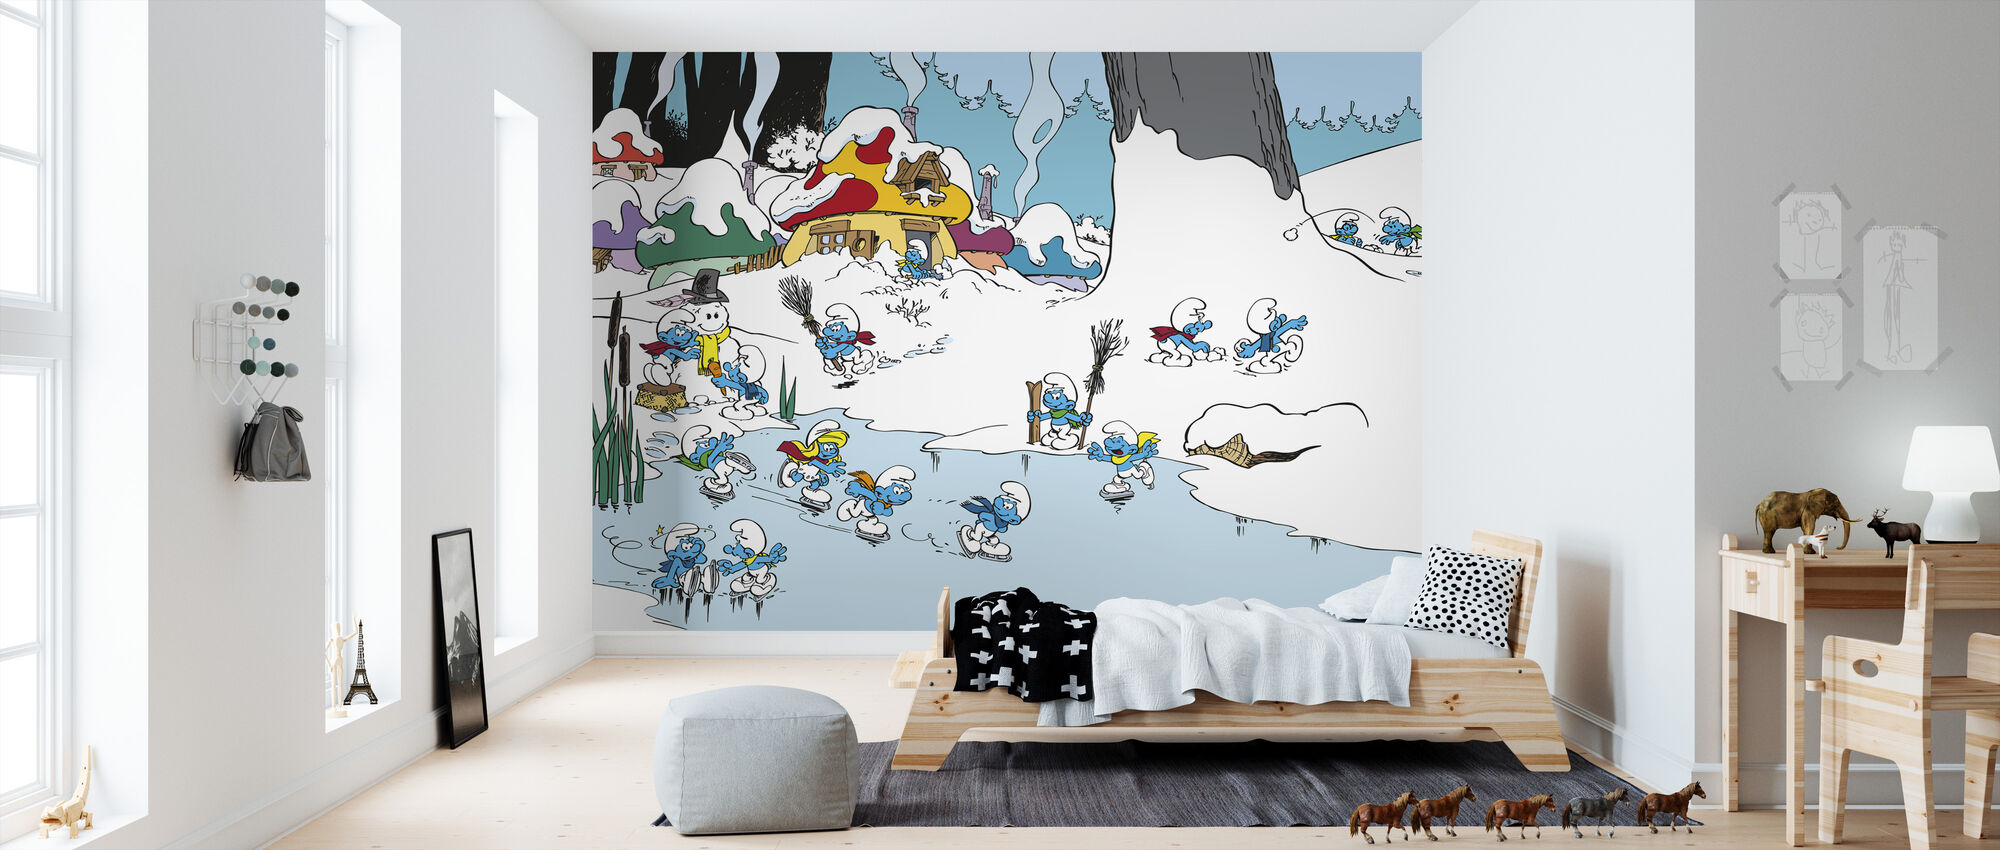 Smurfs - Winter - Wallpaper - Kids Room